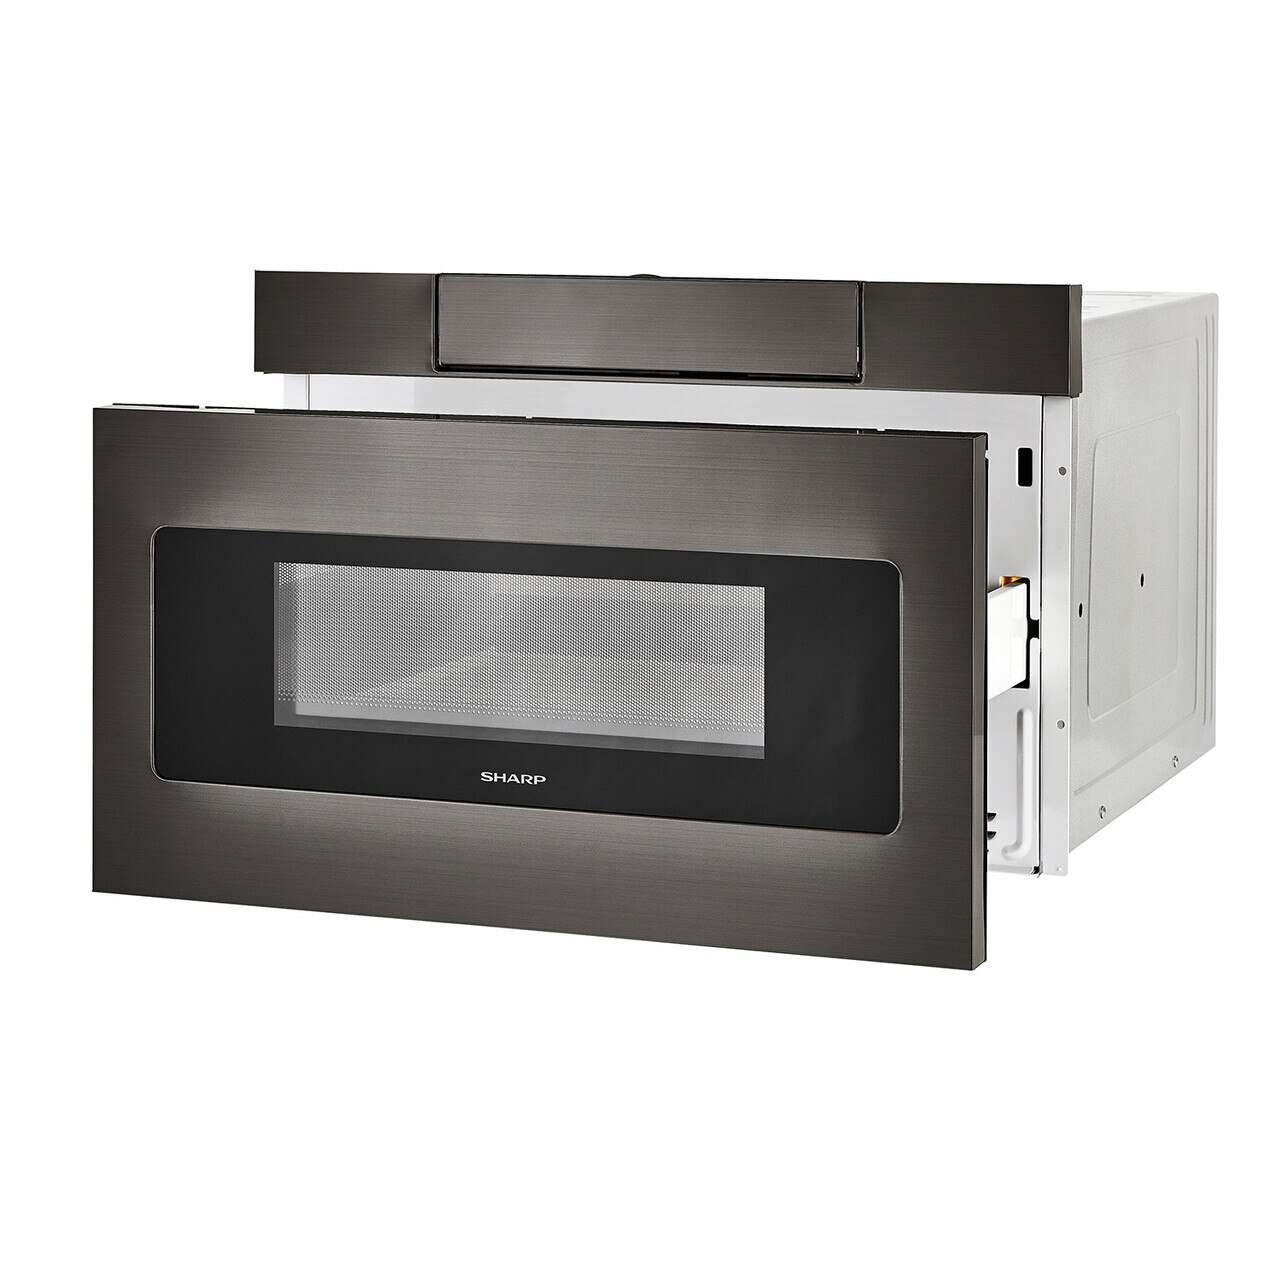 24 in. Black Stainless Steel Microwave Drawer (SMD2470AH) – angled left, open drawer